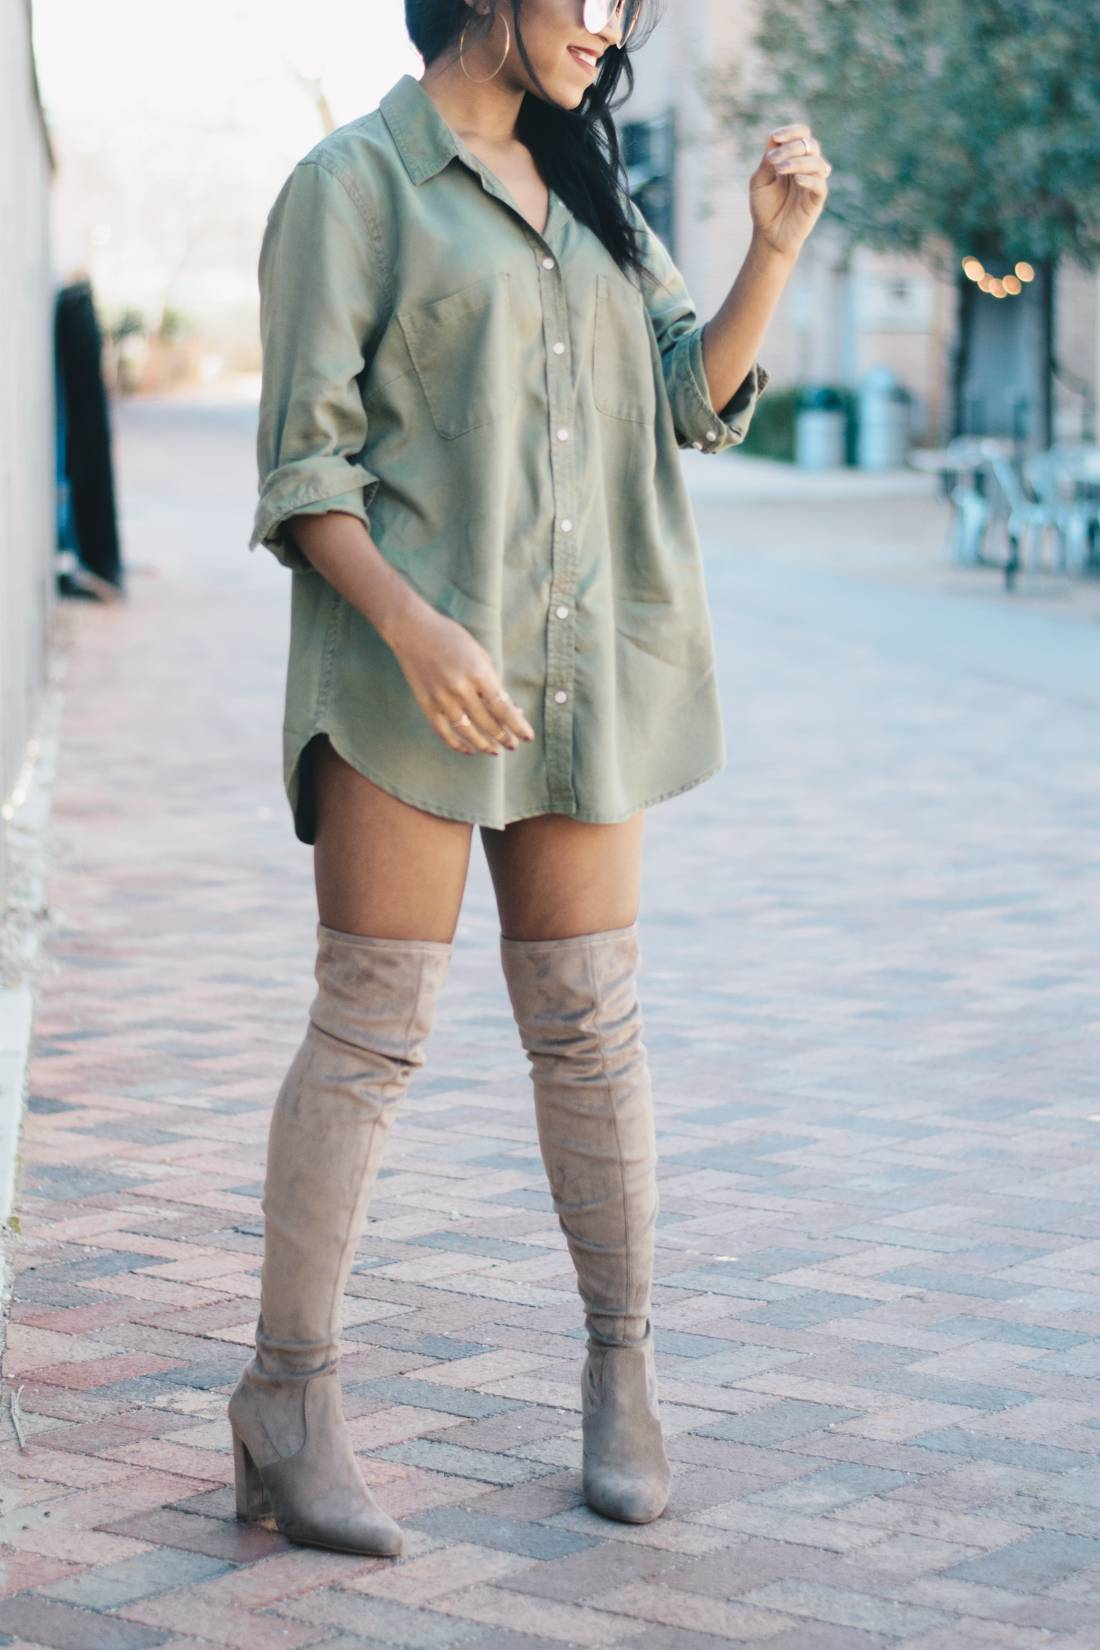 Nude Thigh High Boots And Oversized Shirt 8 Venti Fashion